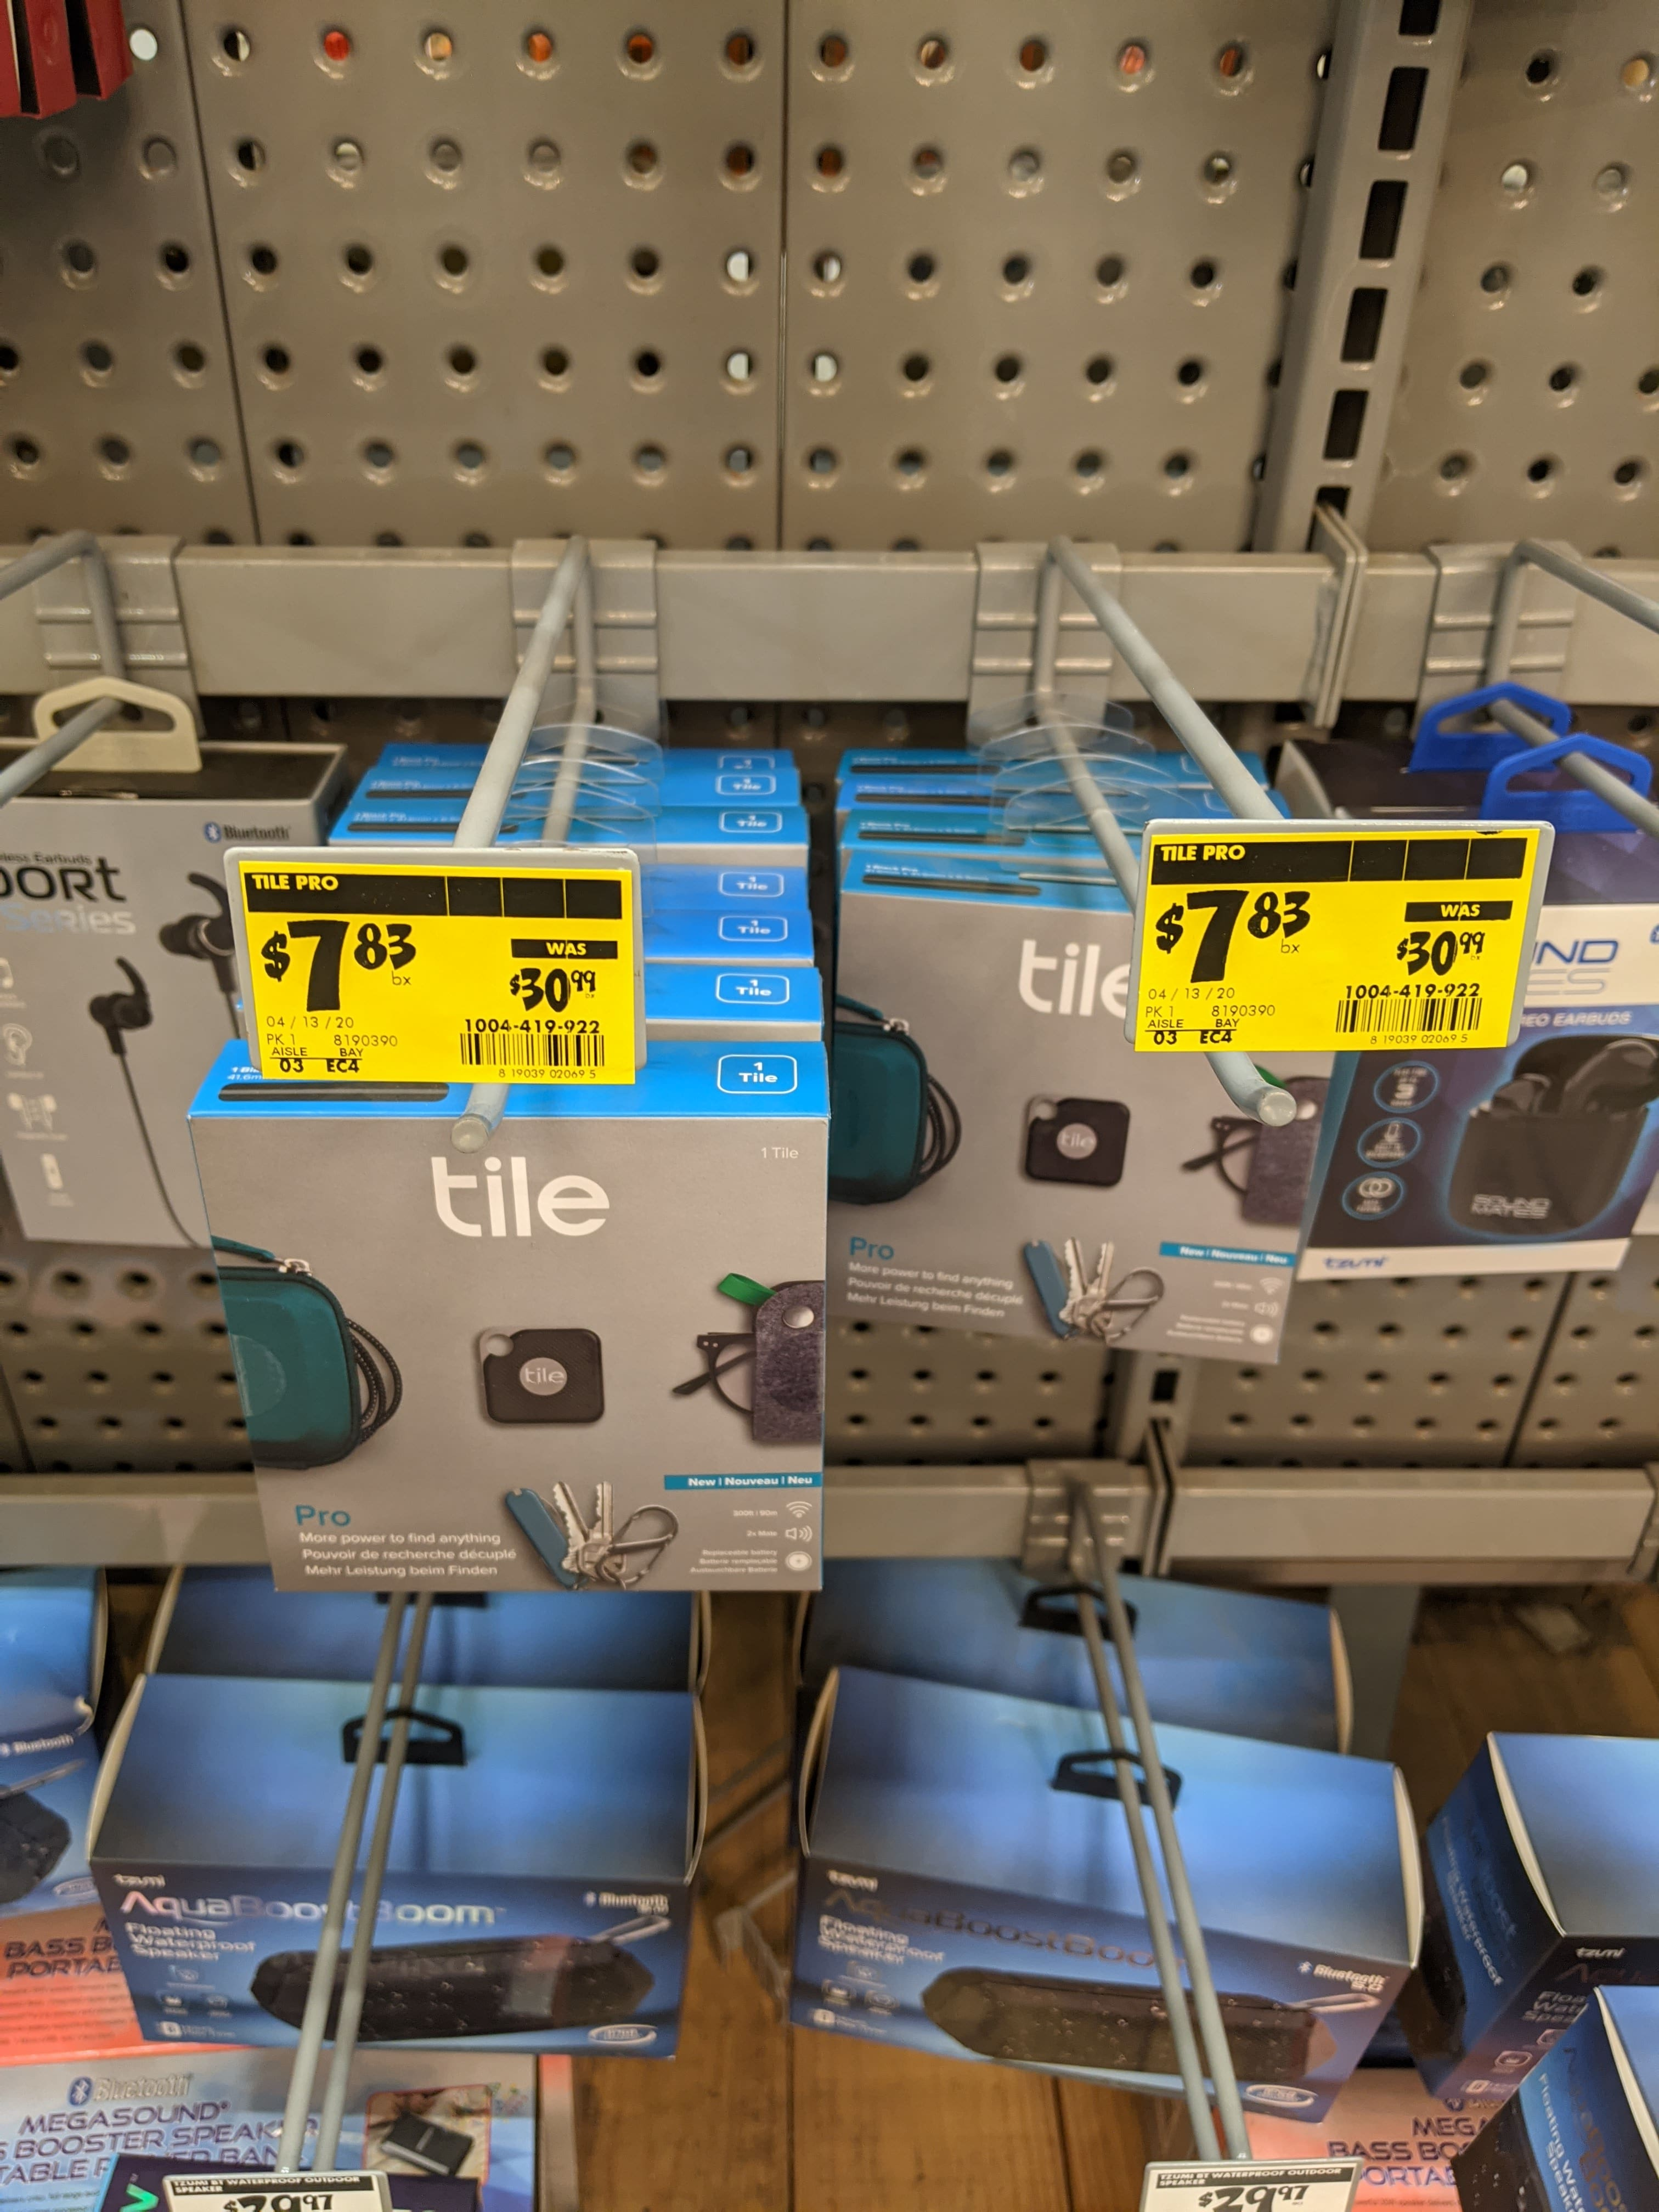 Tile Pro Black with Replaceable Battery-RT-15001 (2018) $7.83 - YMMV - The Home Depot